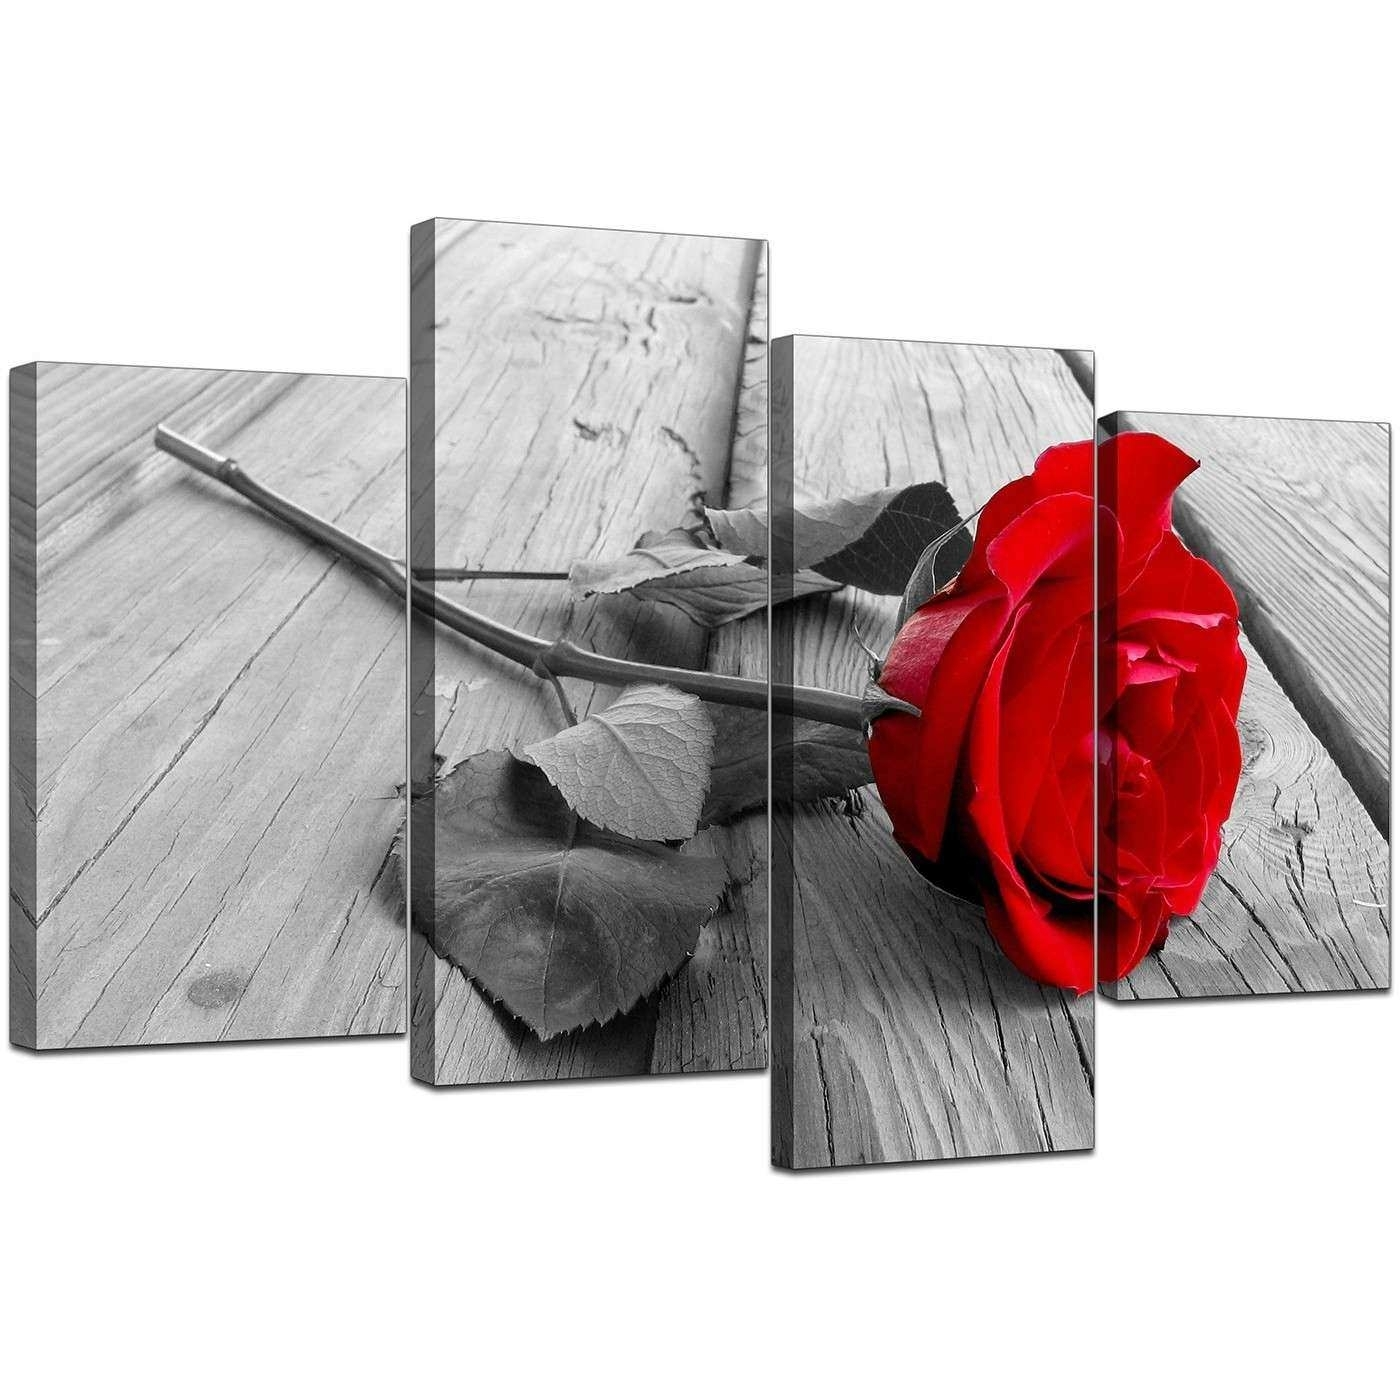 Red And Gray Wall Art Elegant Floral Canvas Wall Art In Red Black With Regard To Most Current Red And Black Canvas Wall Art (View 17 of 20)